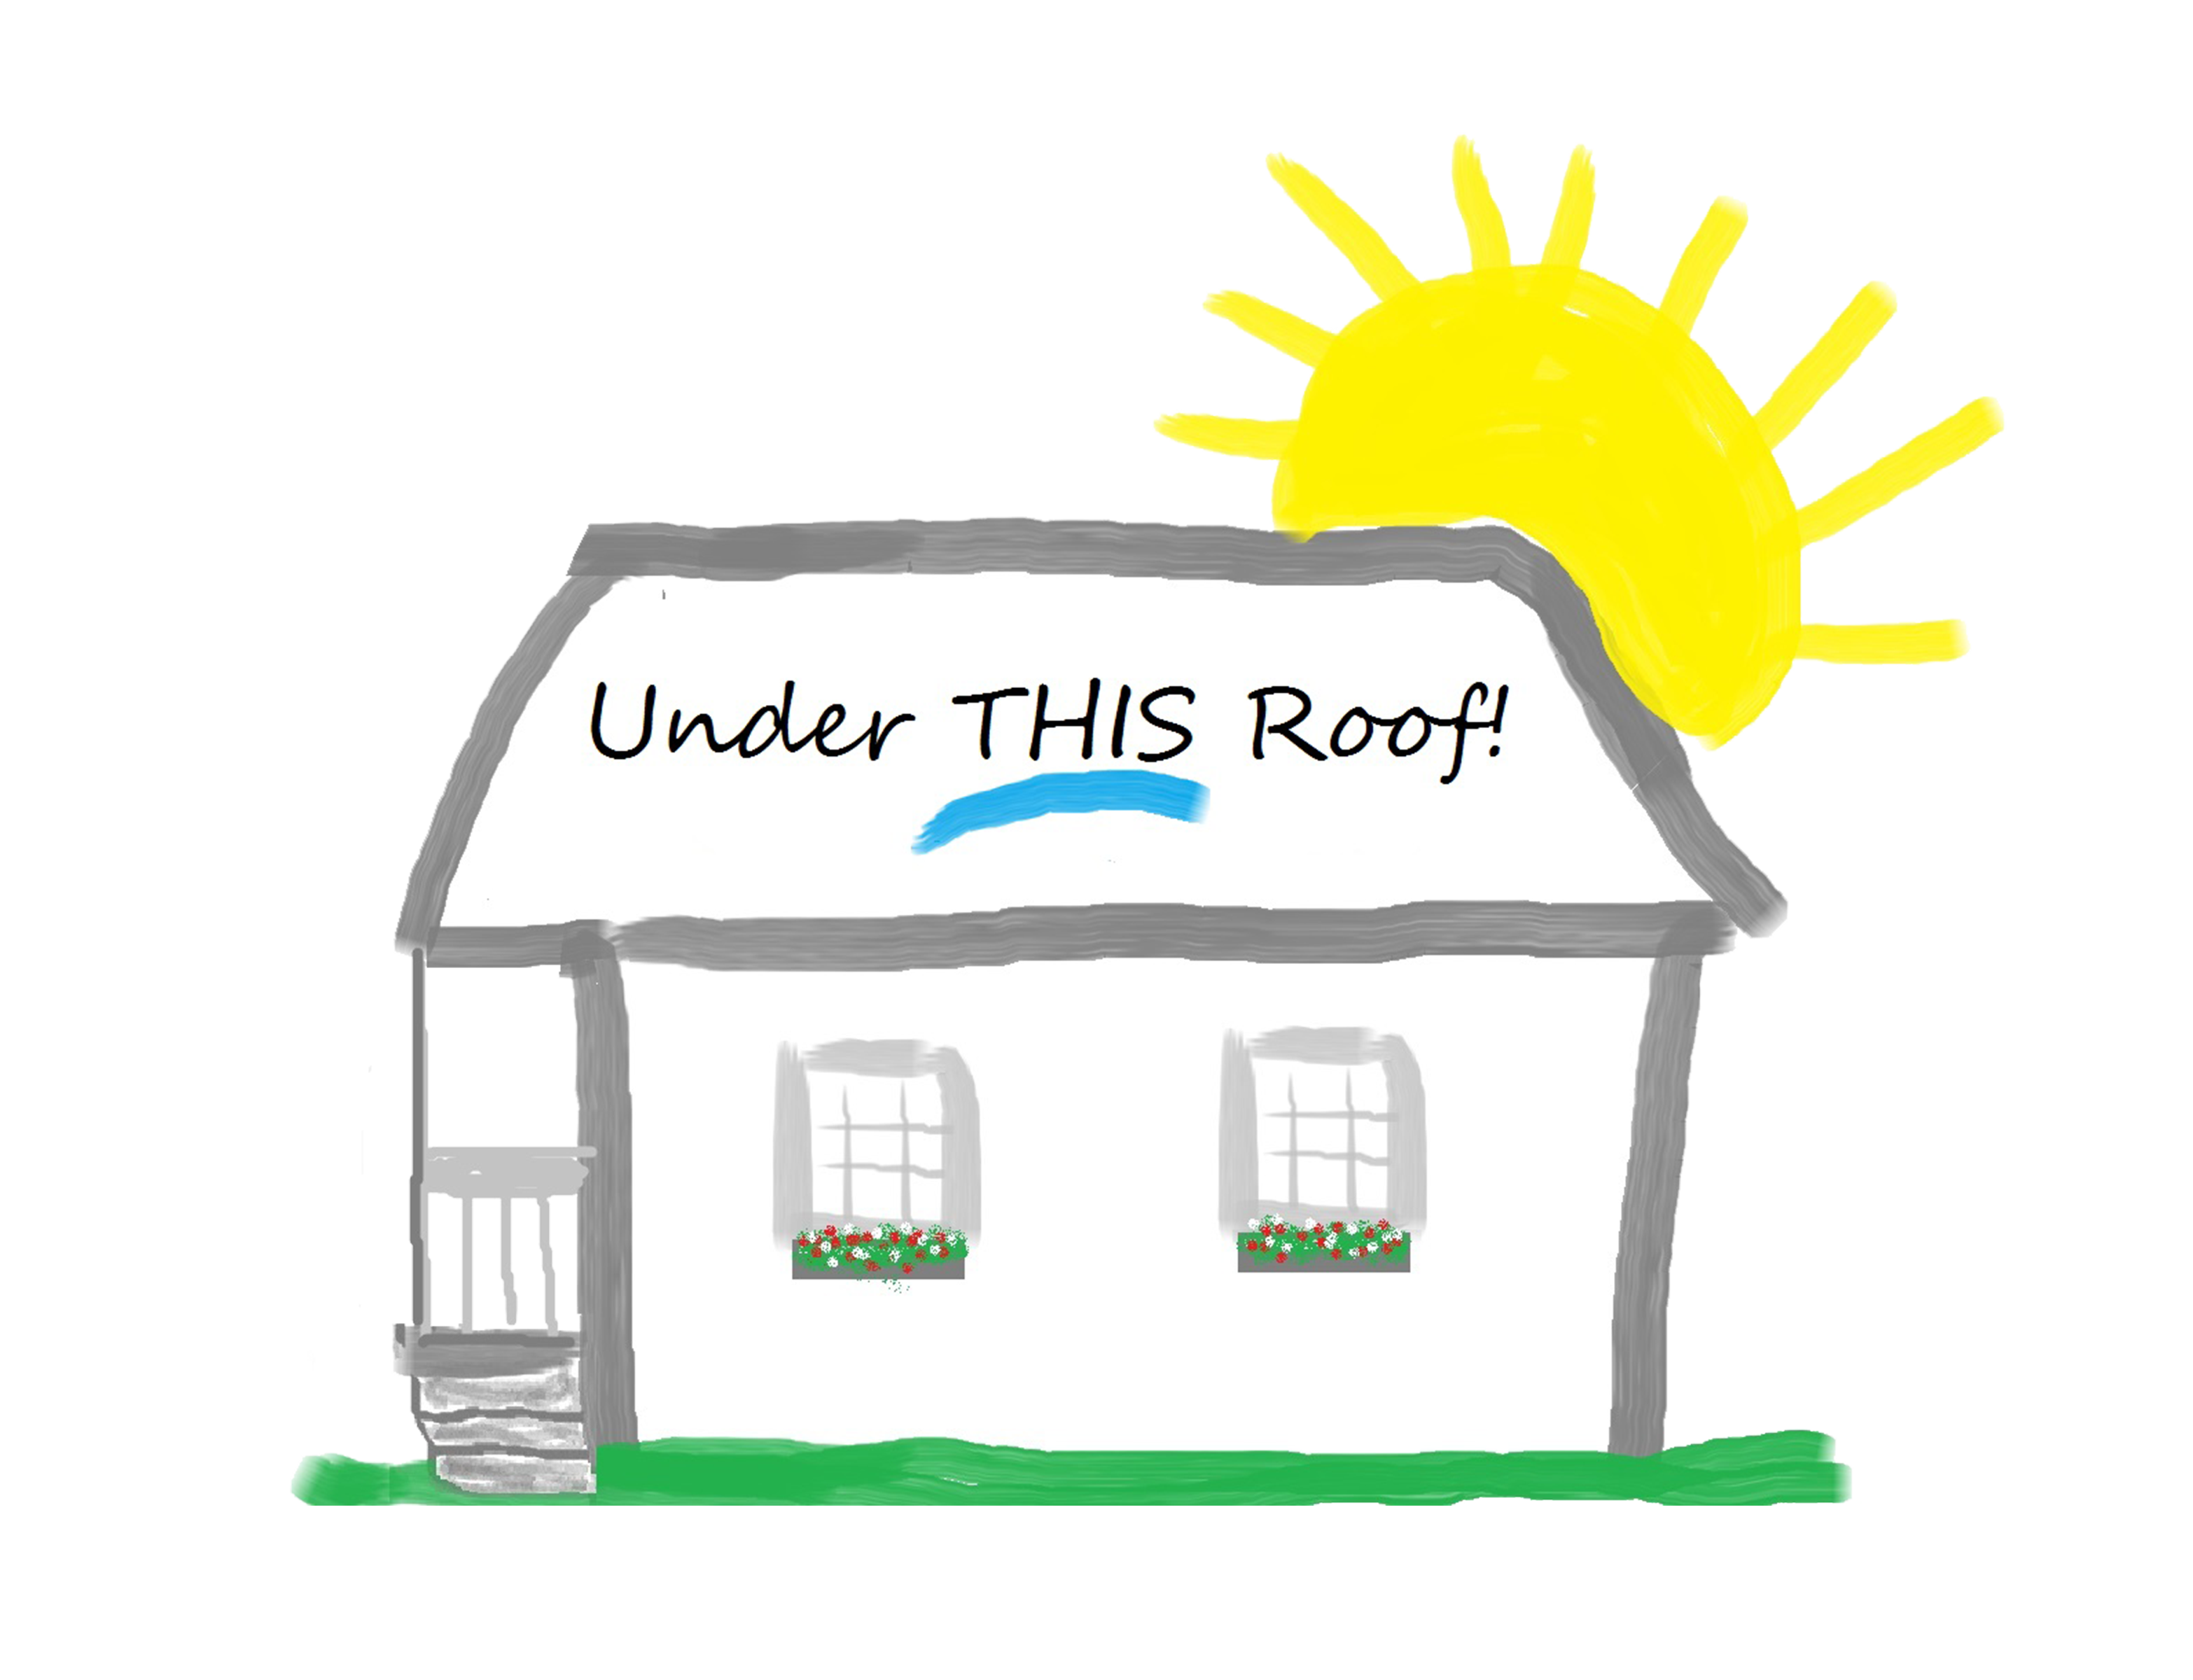 Under This Roof